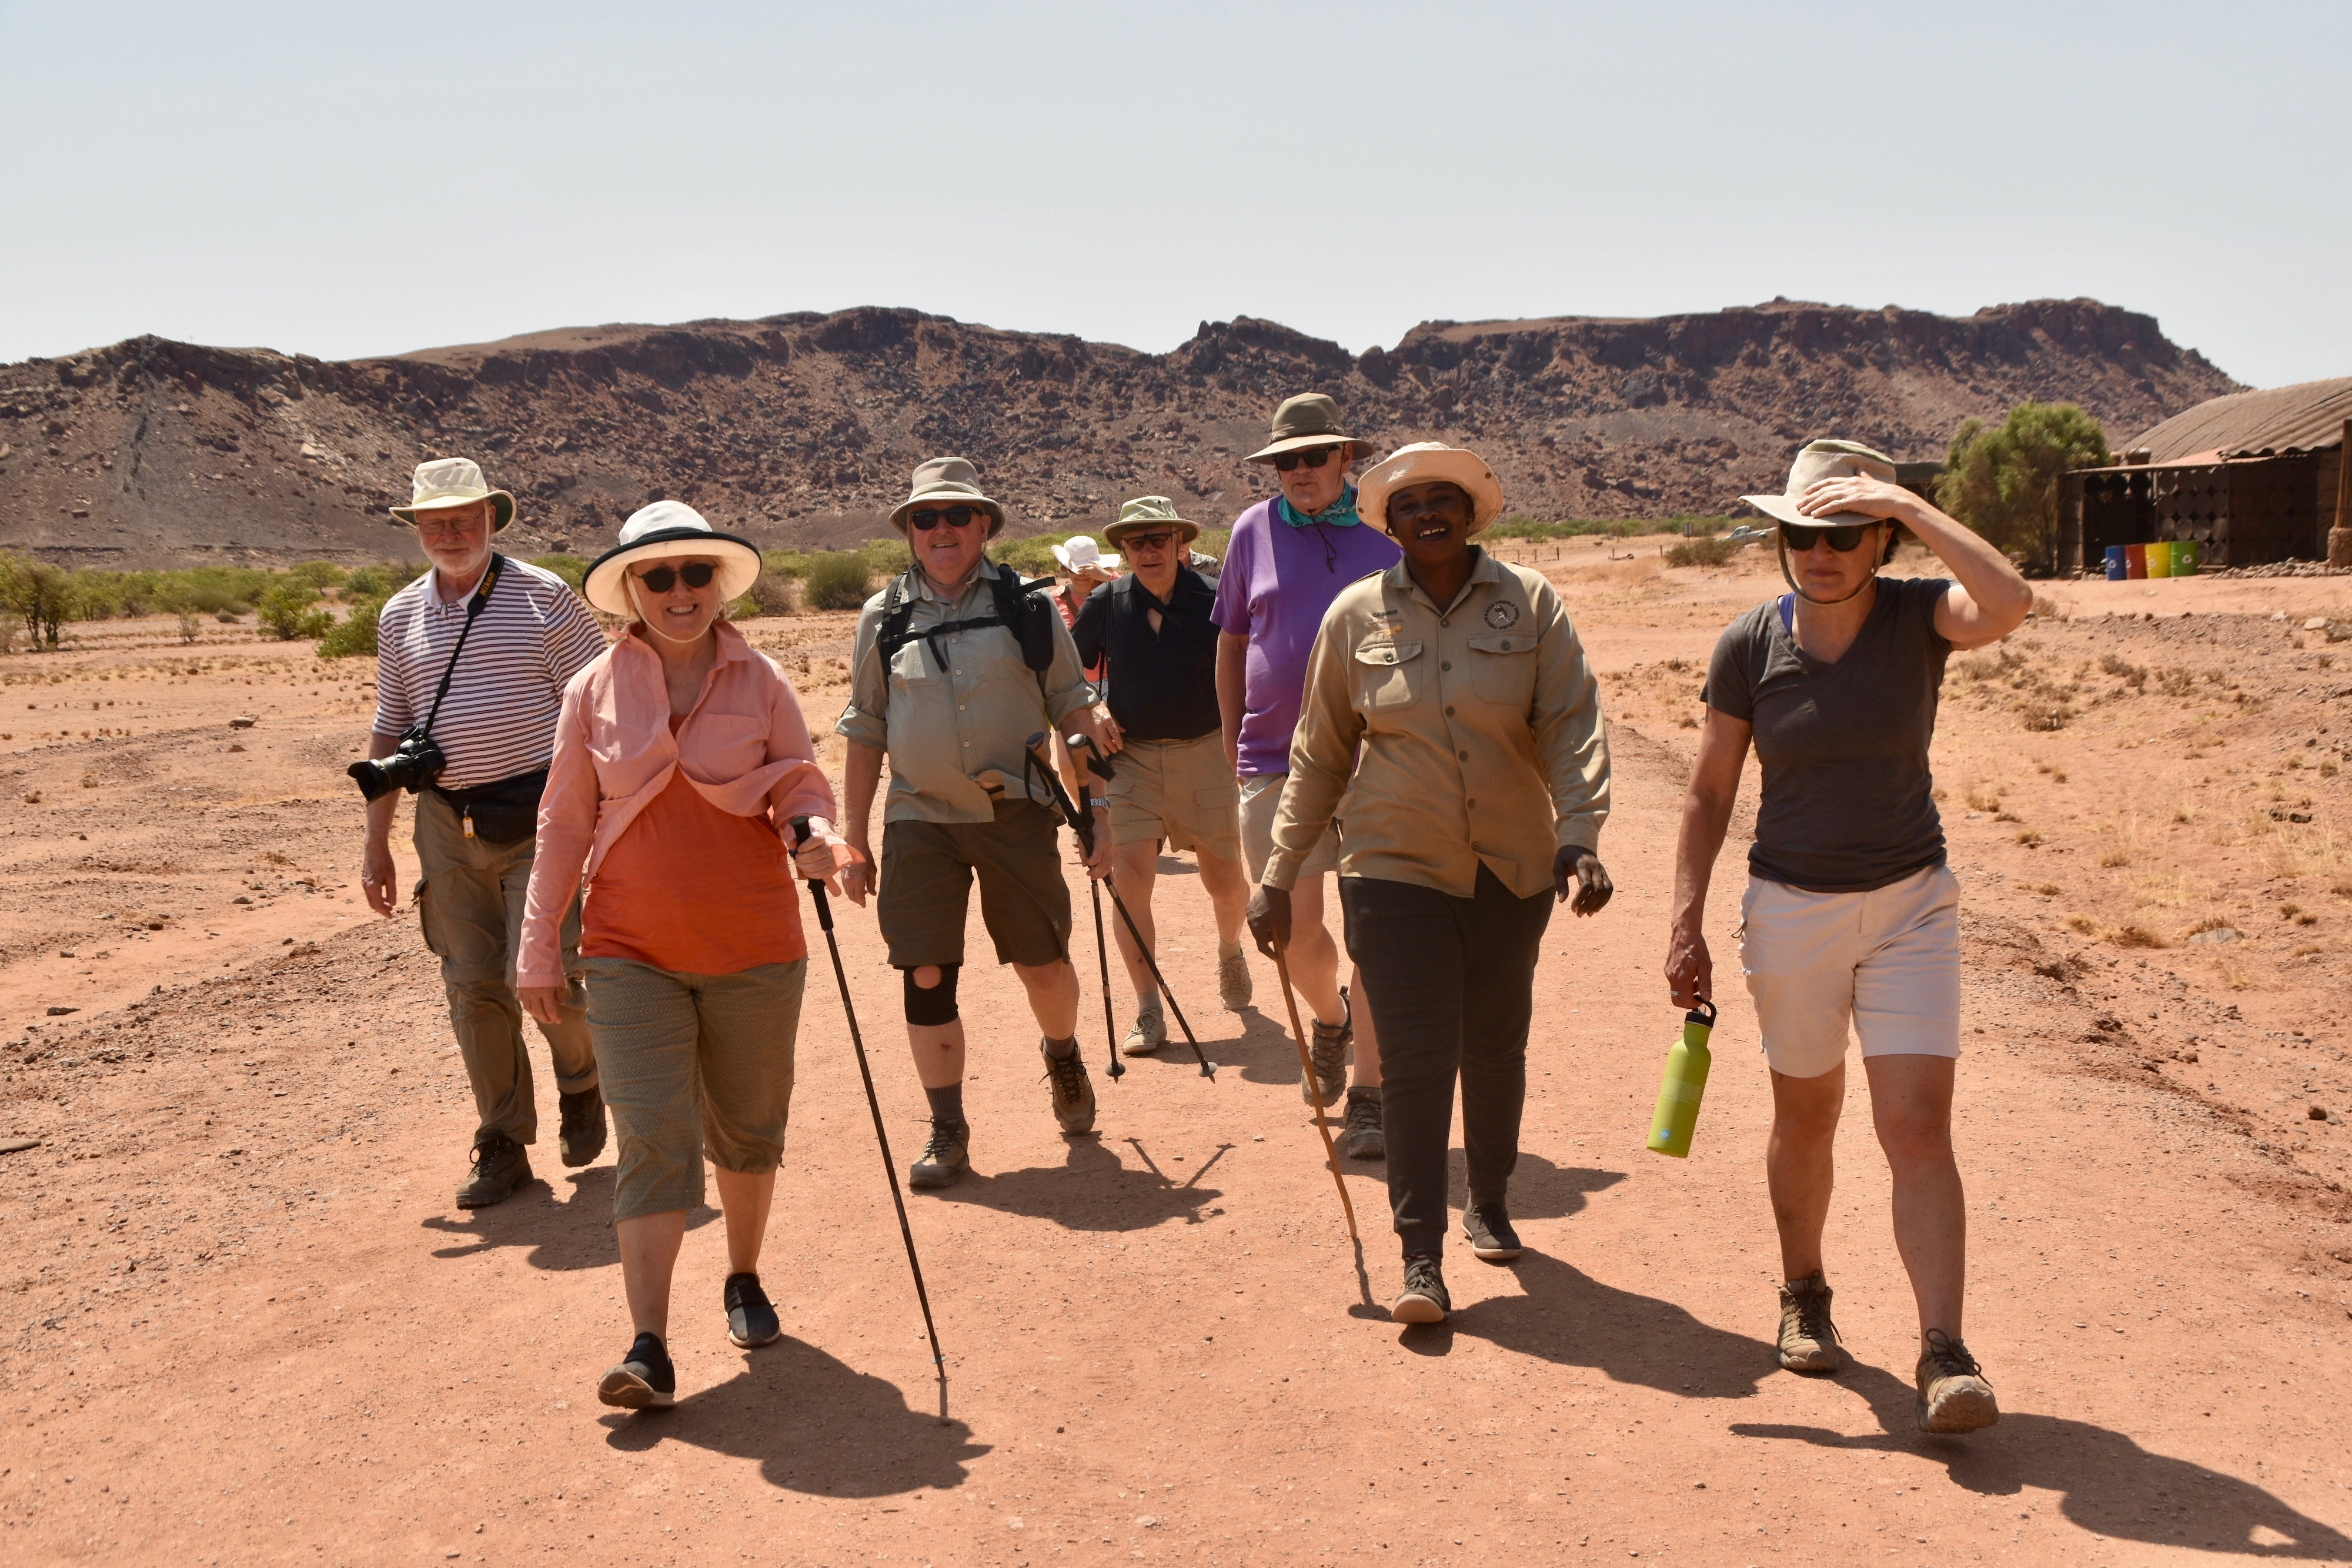 Heading to the Rock Carvings at Twyfelfontein